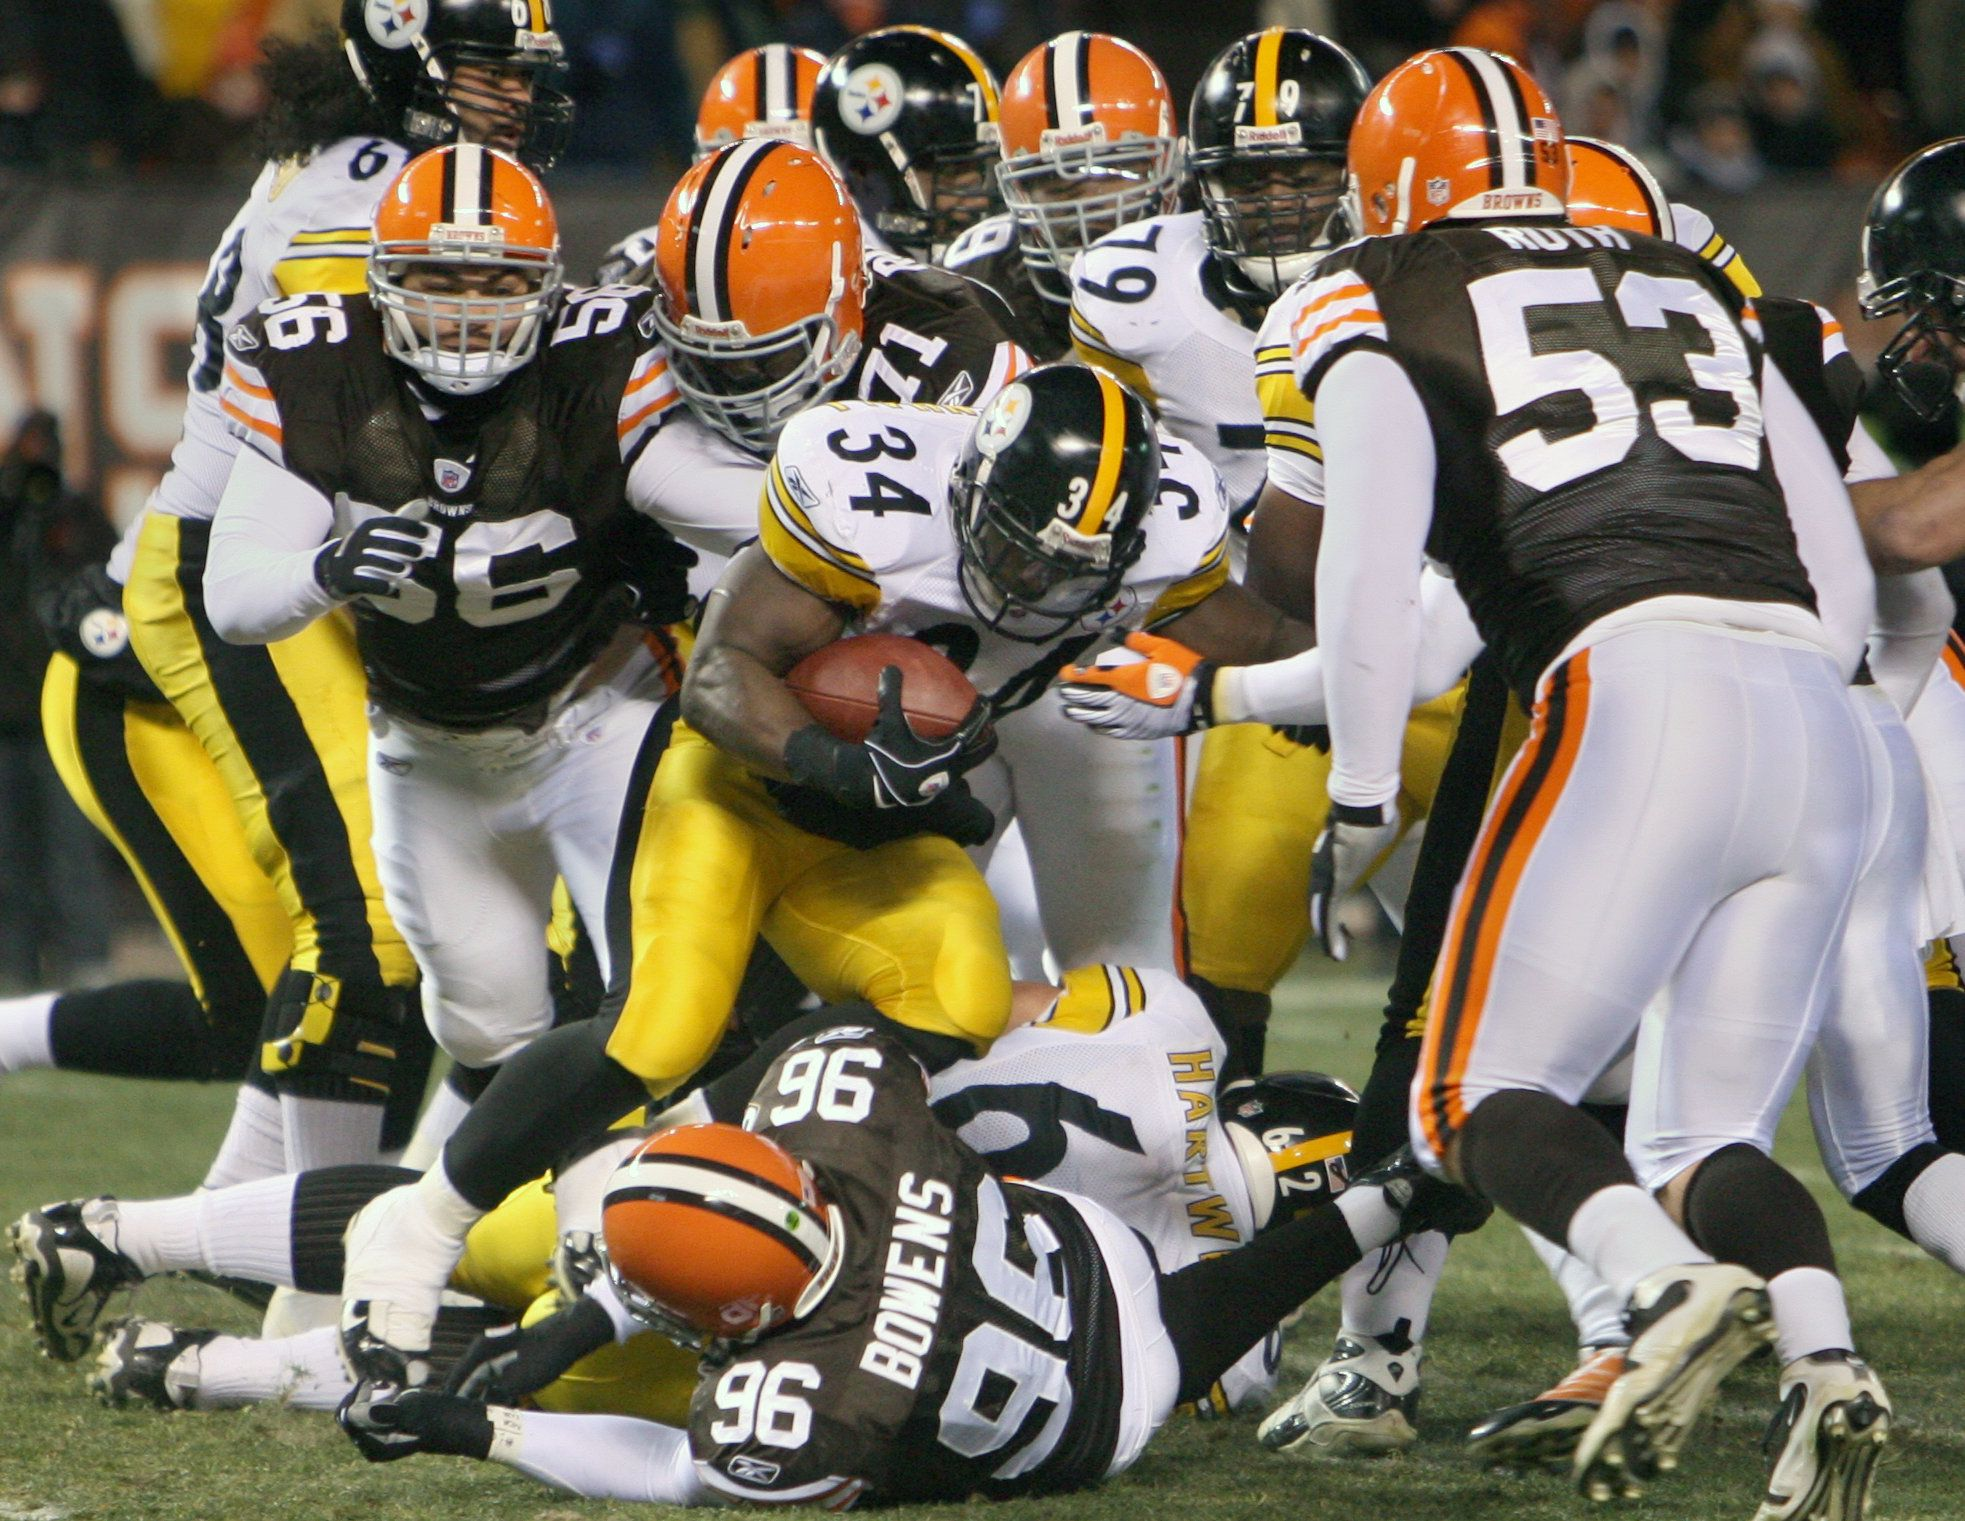 PITTSBURGH vs. CLEVELAND 9/9/2018 NFL Odds, Pick & Preview